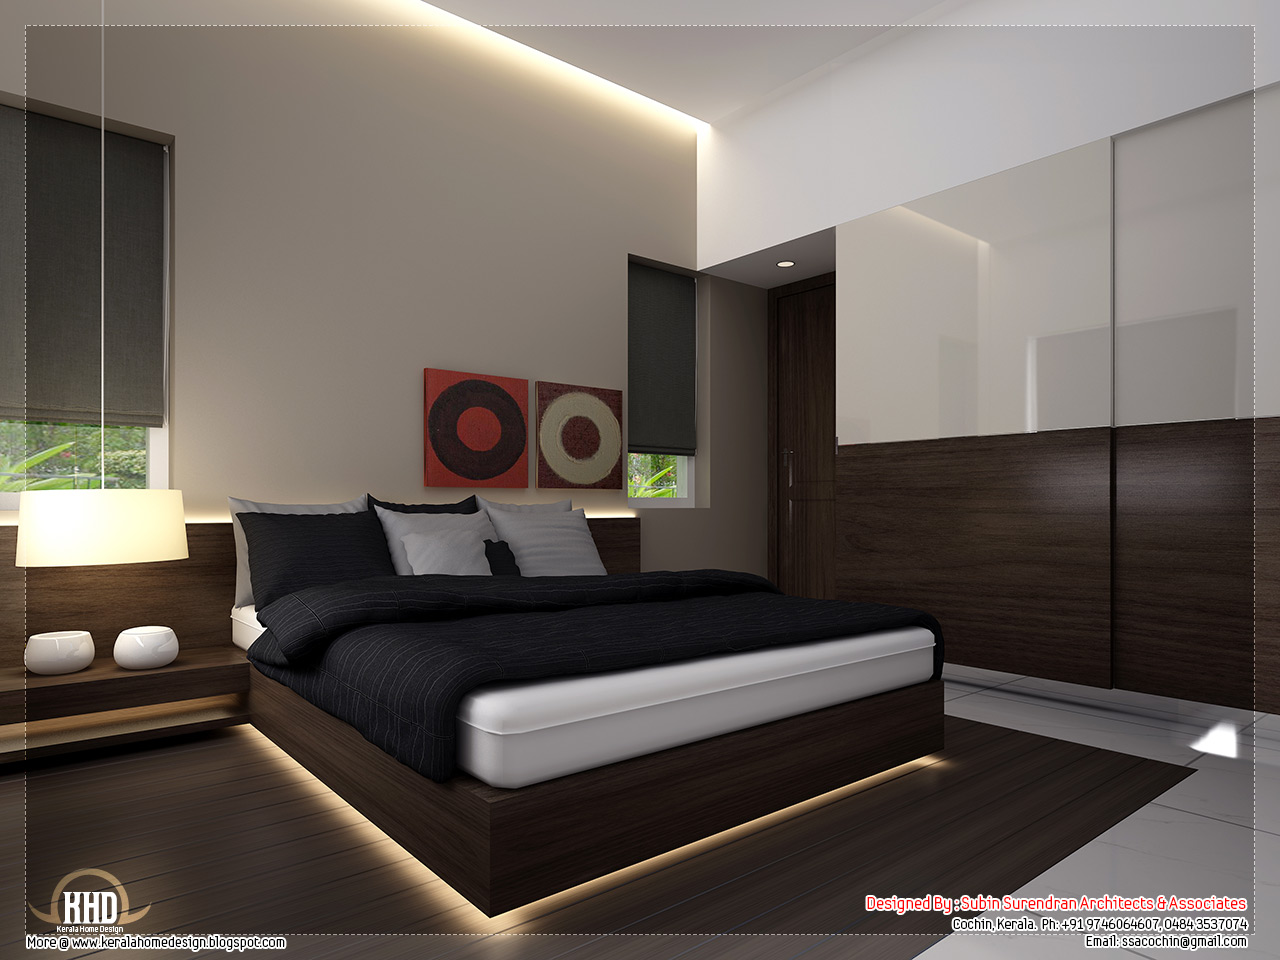 Beautiful home interior designs kerala house design idea - Bedrooms designs ...